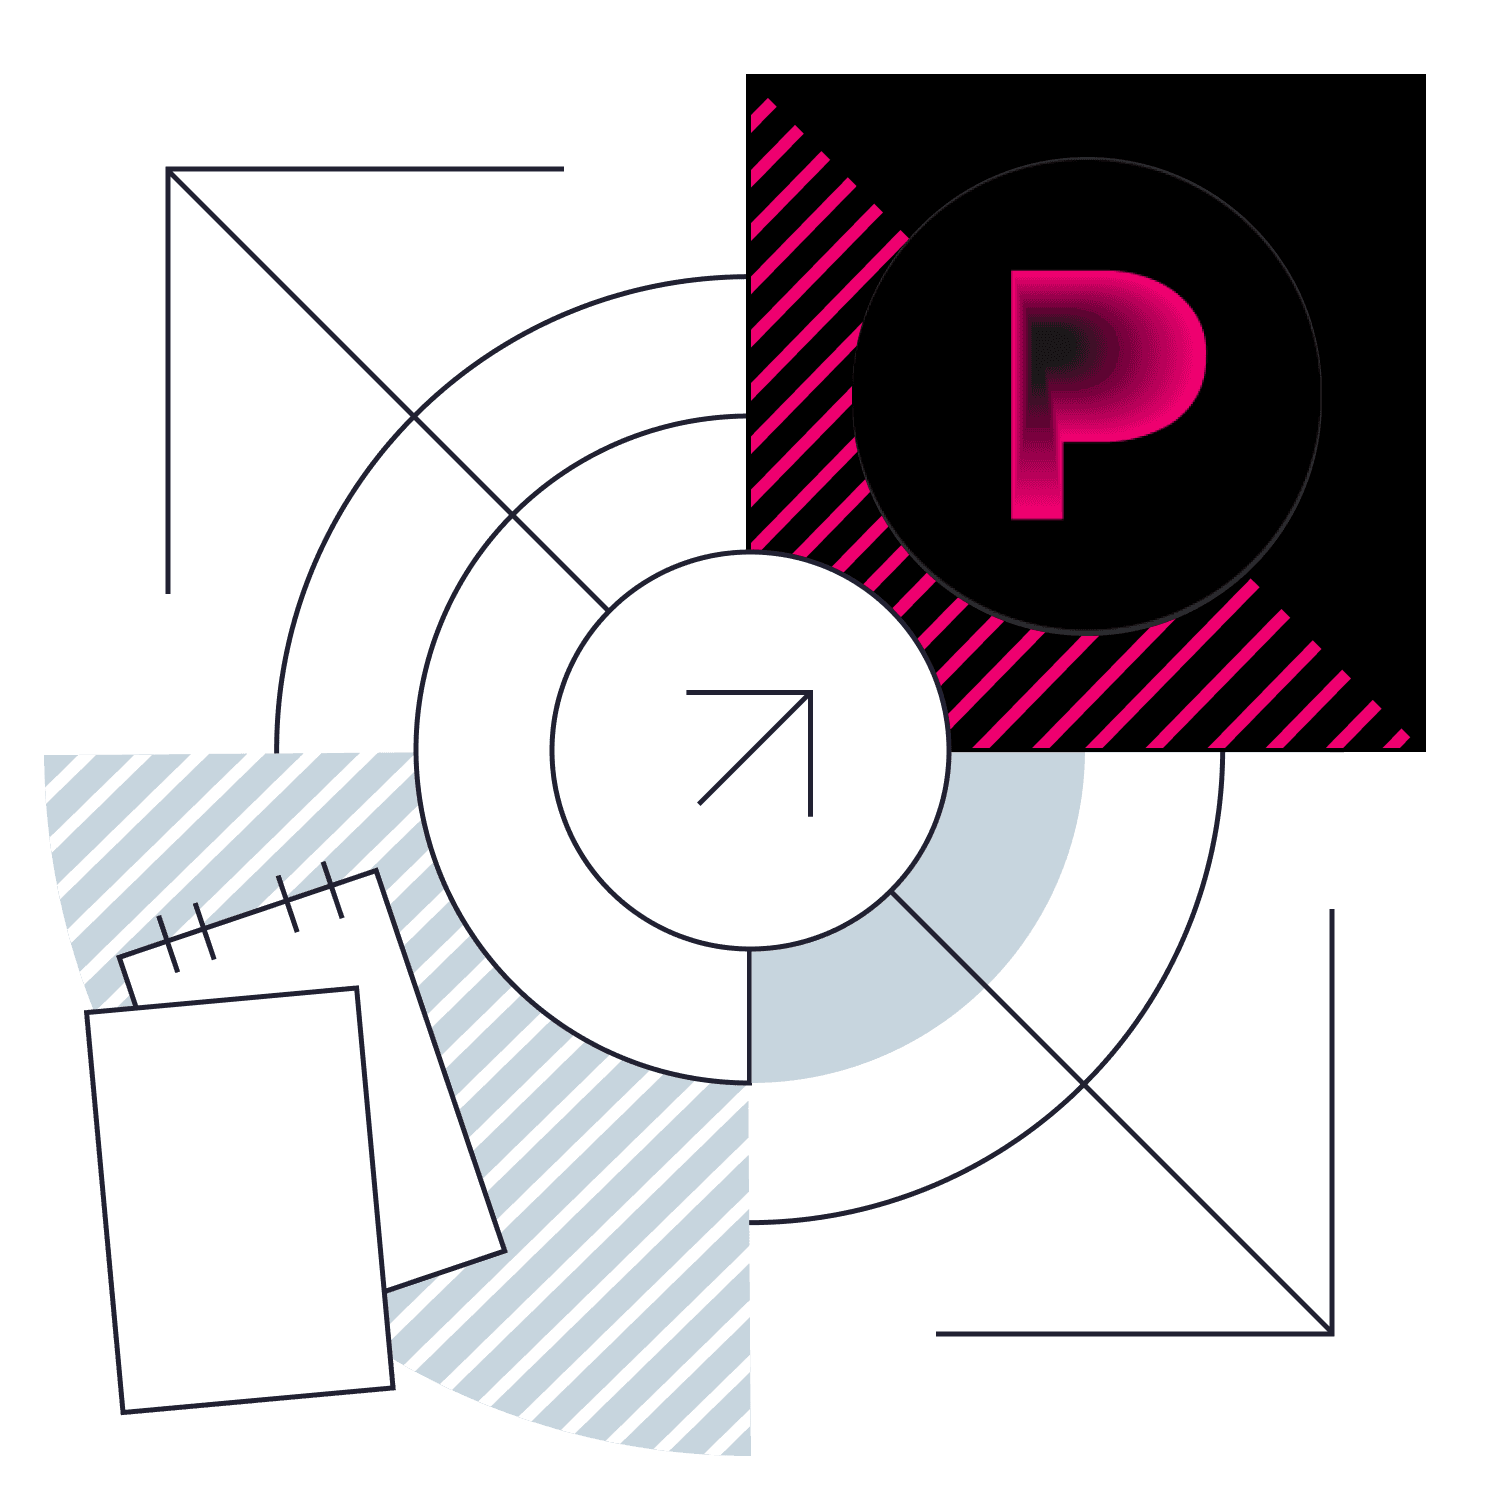 Vectorly Case: How PINKMAN Reviews and Develops Skills Designers